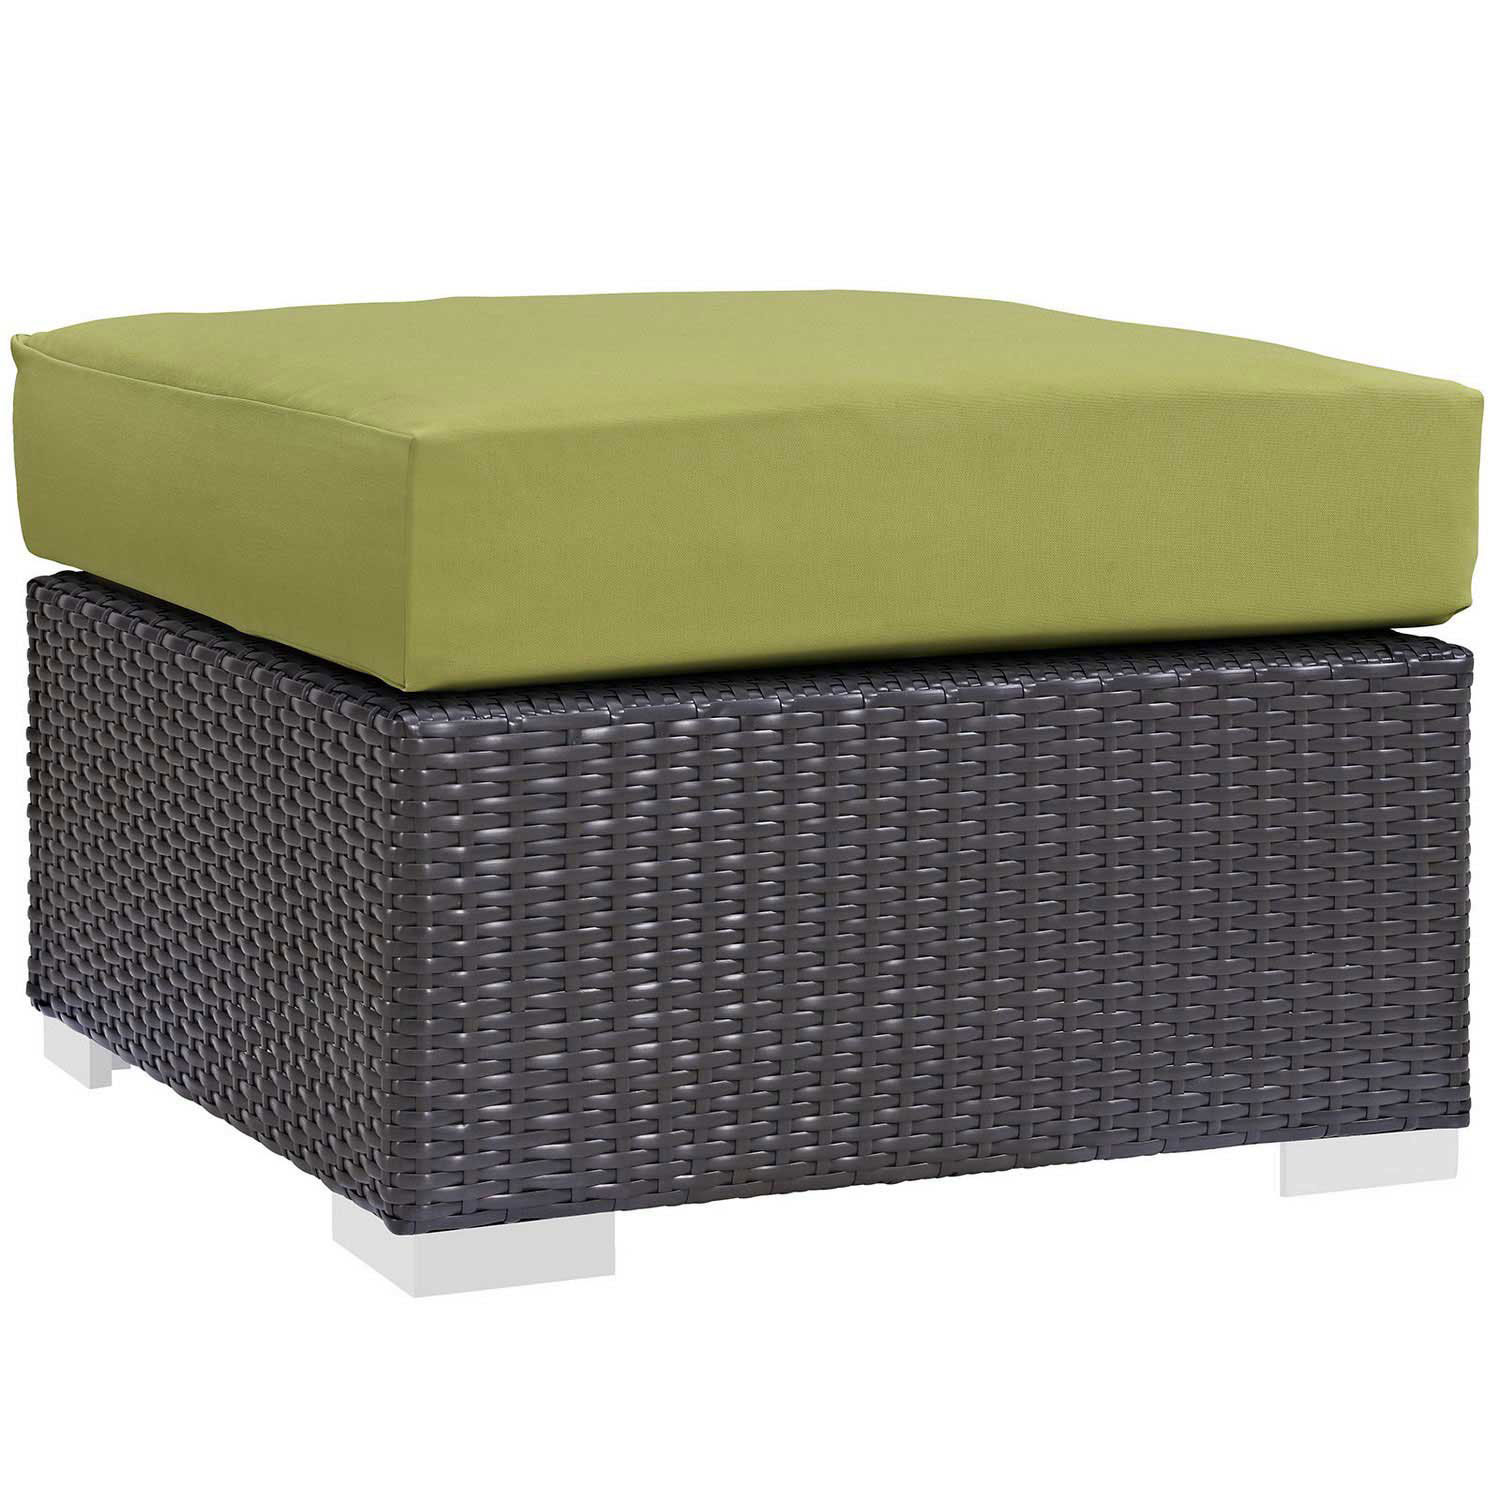 Modway Convene Outdoor Patio Fabric Square Ottoman - Espresso Peridot